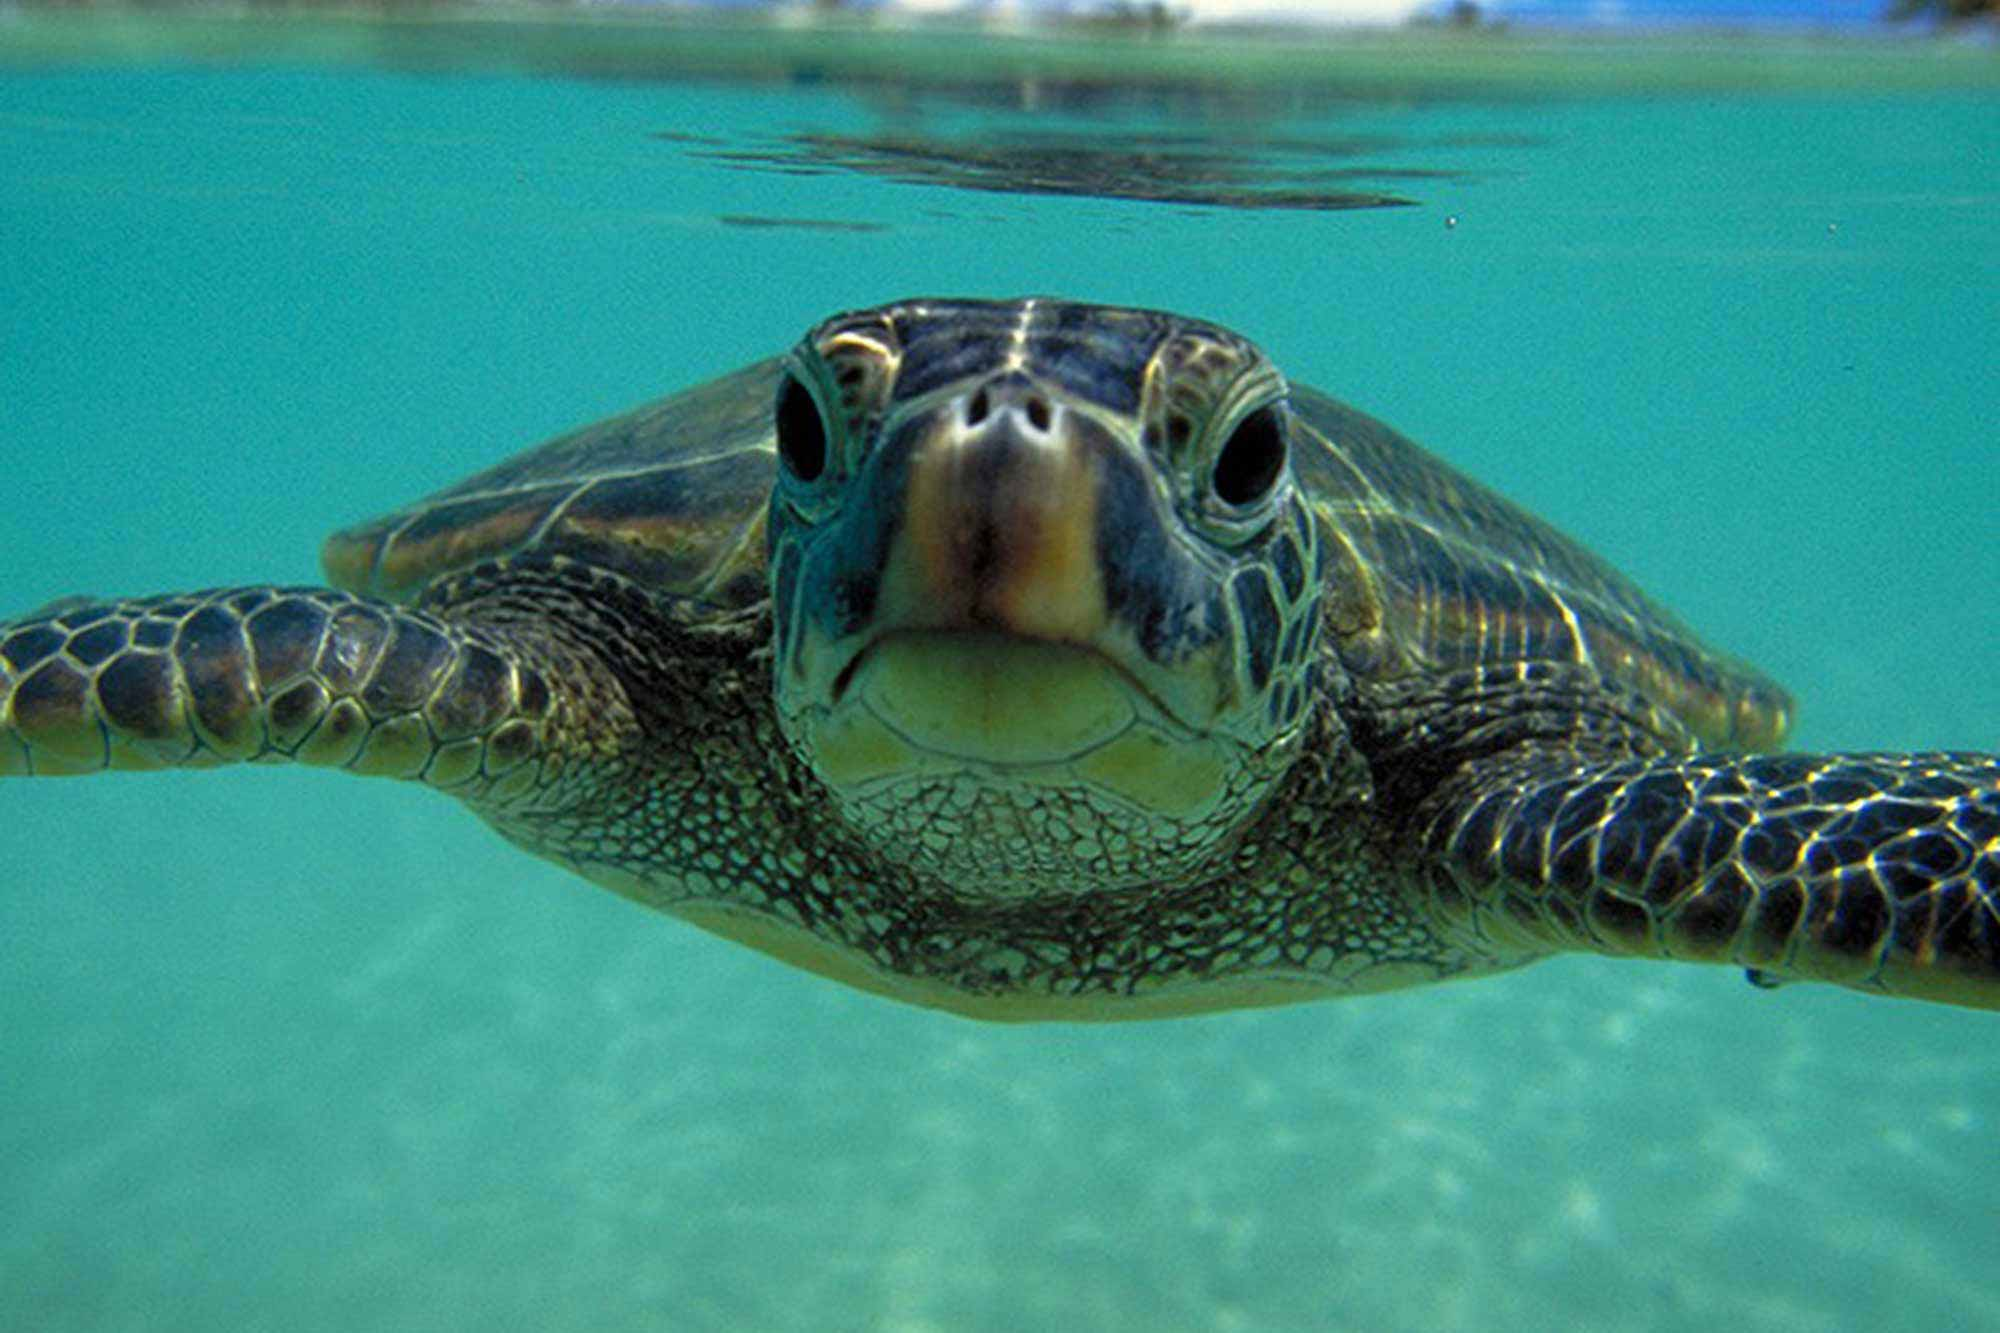 The Mauna Lani Bay Hotel has raised and released hundreds of green turtles, so the Kohala Coast boasts a large population of them. Get out in the water to meet them or see several that swim in the hotel pond. Photo courtesy Mauna Lani Bay Hotel.